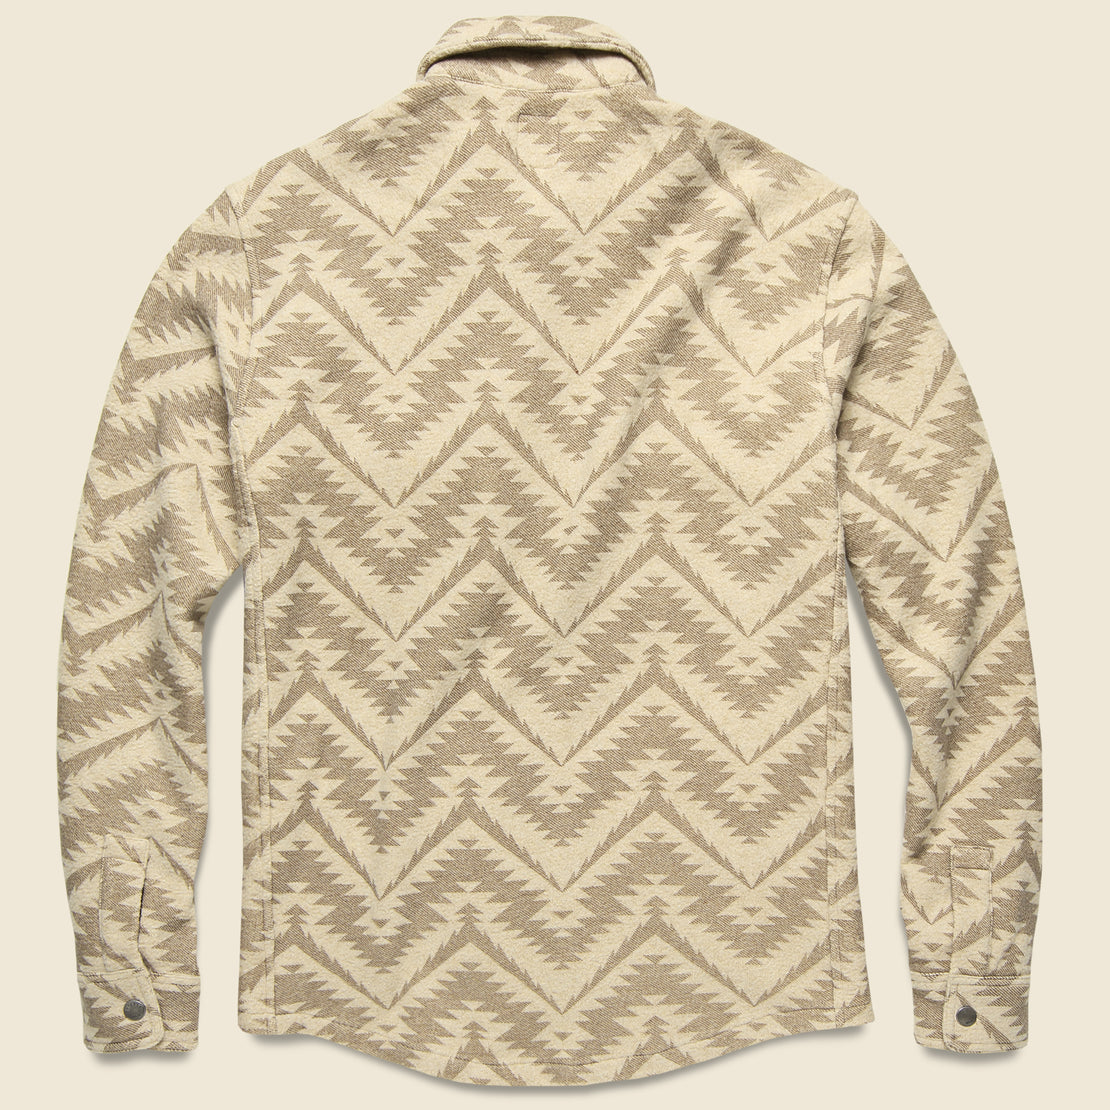 Monument Valley CPO Jacket - Sandstone